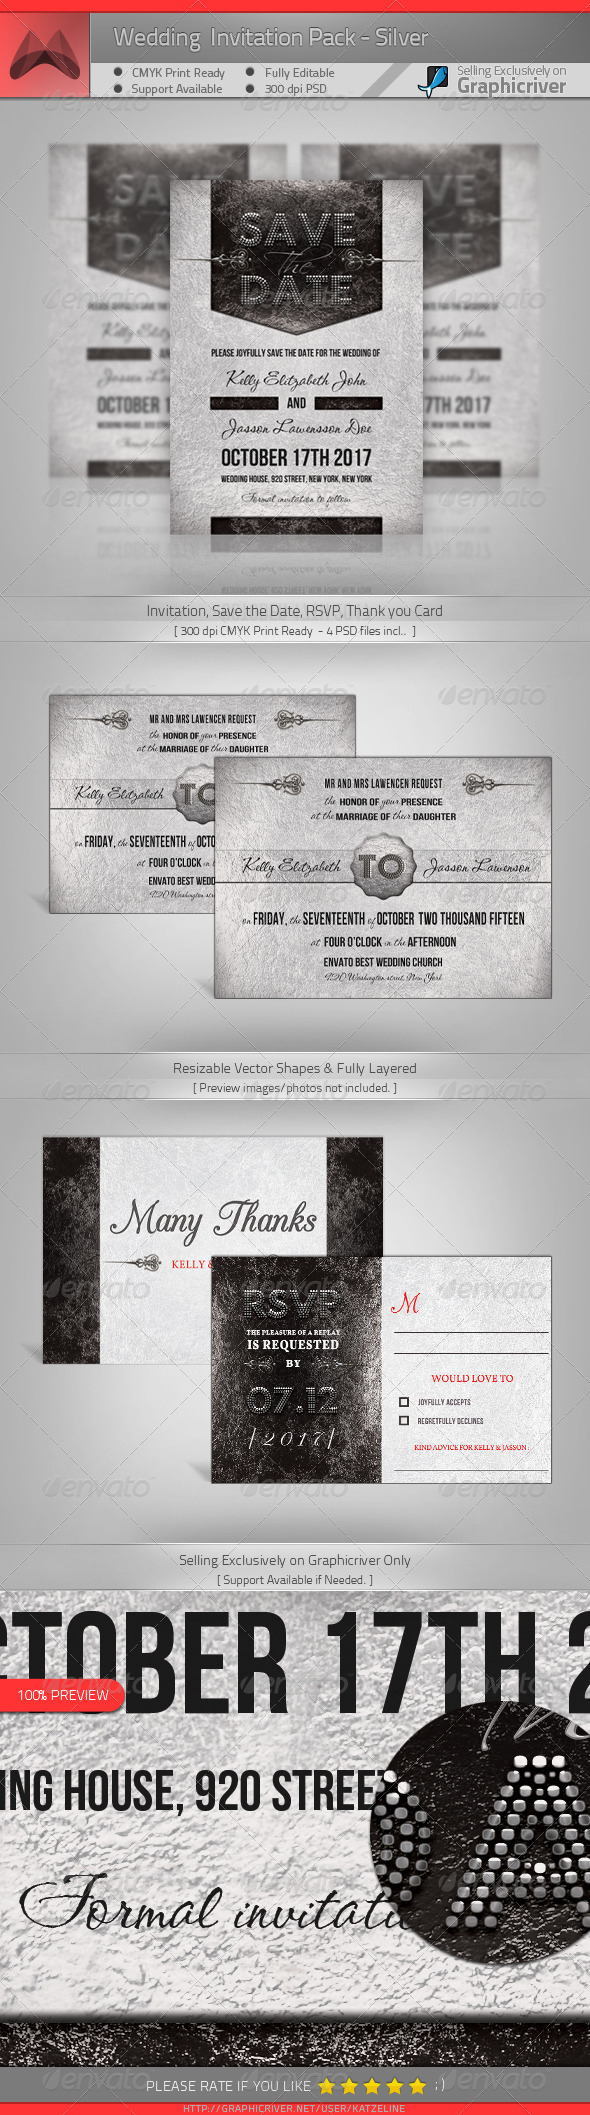 GraphicRiver Wedding Package Silver 4422170